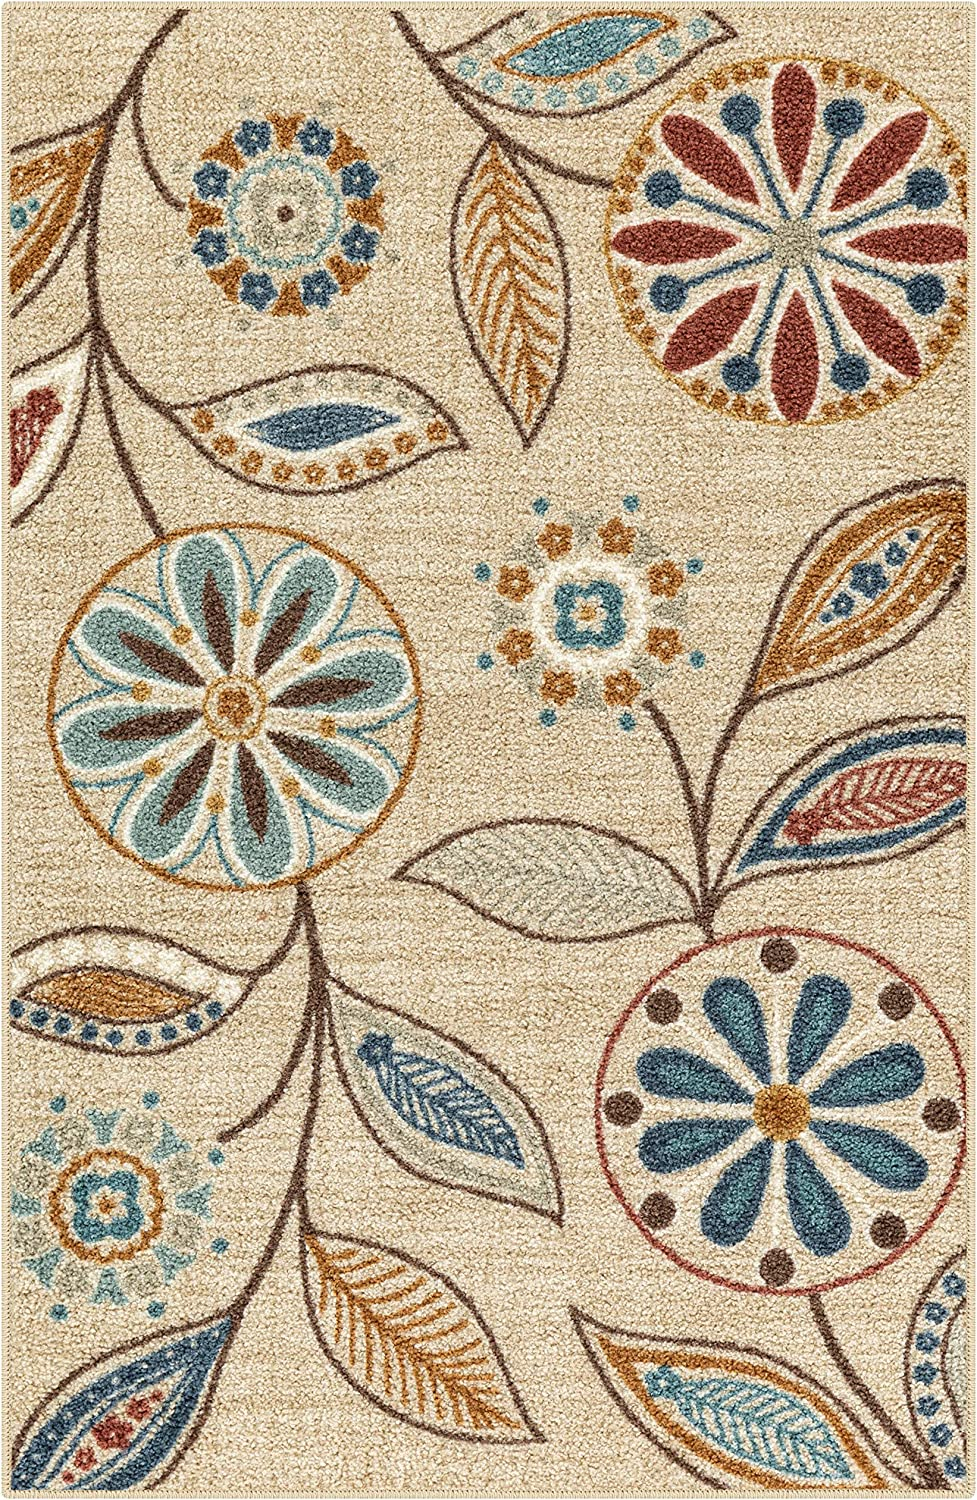 Sales results No. 1 Maples Rugs Reggie Floral Kitchen Carp Skid Accent free Area Non